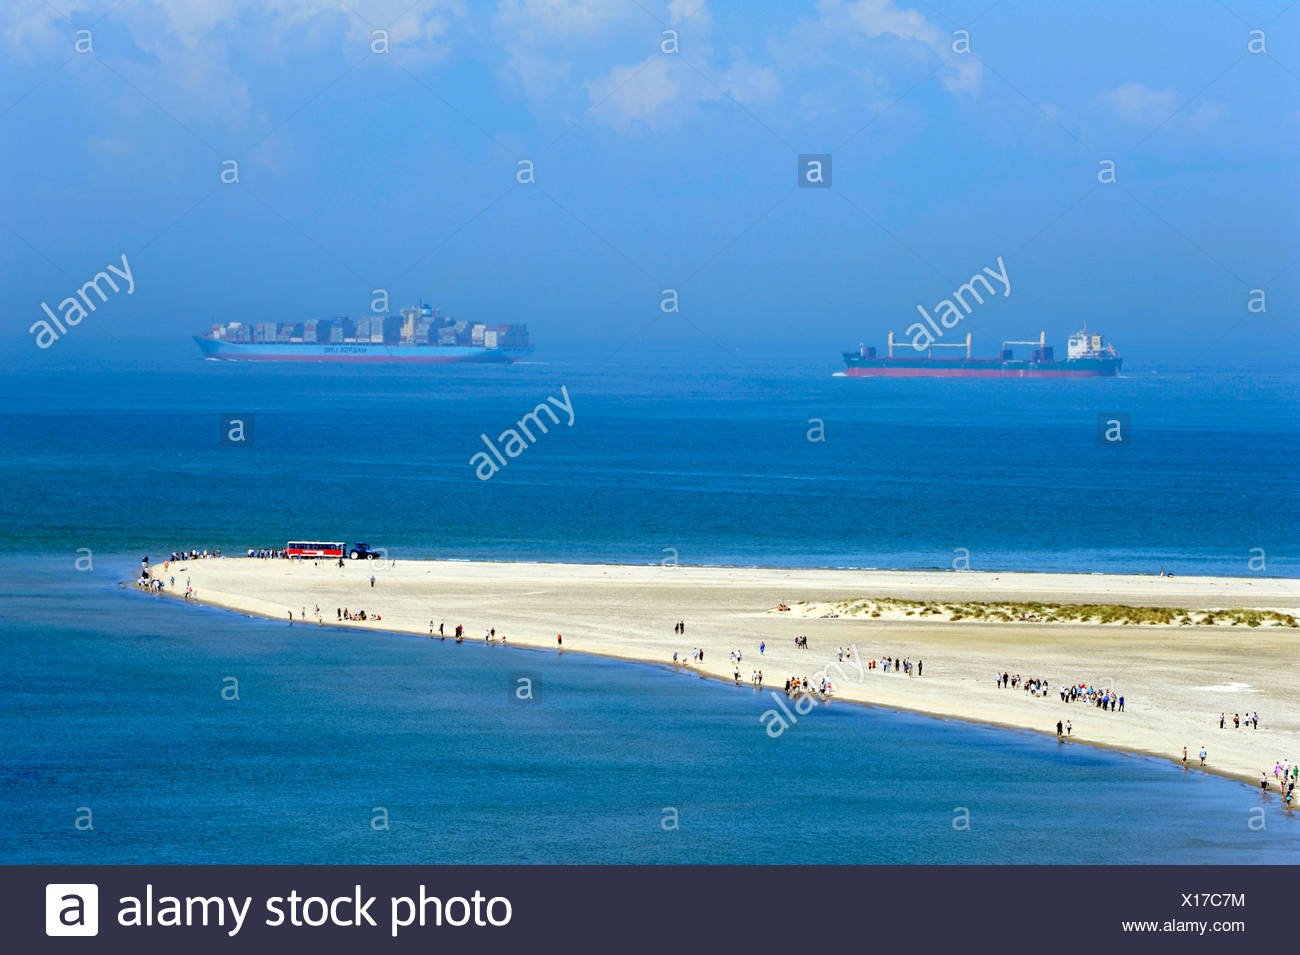 Headland with people where the North Sea and the Baltic Sea meet, container ships at back, Skagen, Jutland, Denmark, Europe - Stock Image